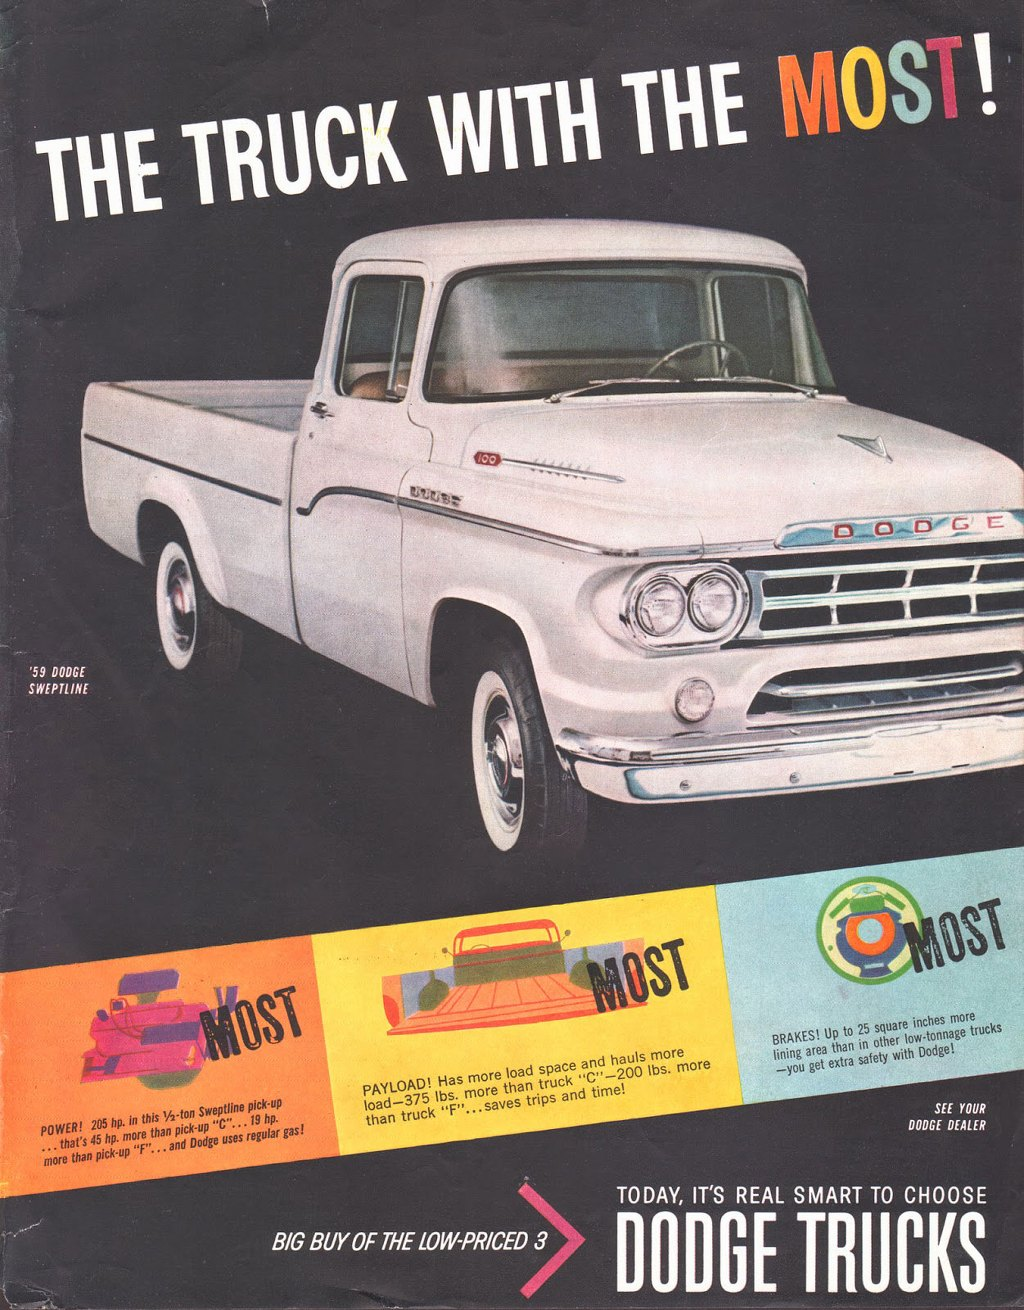 '59 DODGE SWEPTLINE   St   POWER! 205 hp• in this 1/2-ton Sweptline pick-up . that's 45 hp• more than pick-up ''C''... 19 hp• more than pick-up ''F''... and Dodge uses regular gas!  PAYLOAD! Has more load space and hauls more load-375 lbs. more than truck ''C'' —200 lbs. more than truck ''F'' • •• saves trips and time!   BRAKES! Up to 25 square inches me,erucks lining area than in other low-tonnagdge! mere rucks get extra salety with Do  SEE YOUR DODGE DEALER  BIG BUY OF THE LOW-PRICED 3   TODAY, IT'S REAL SMART TO CHOOSE  DODGE TRUCKS